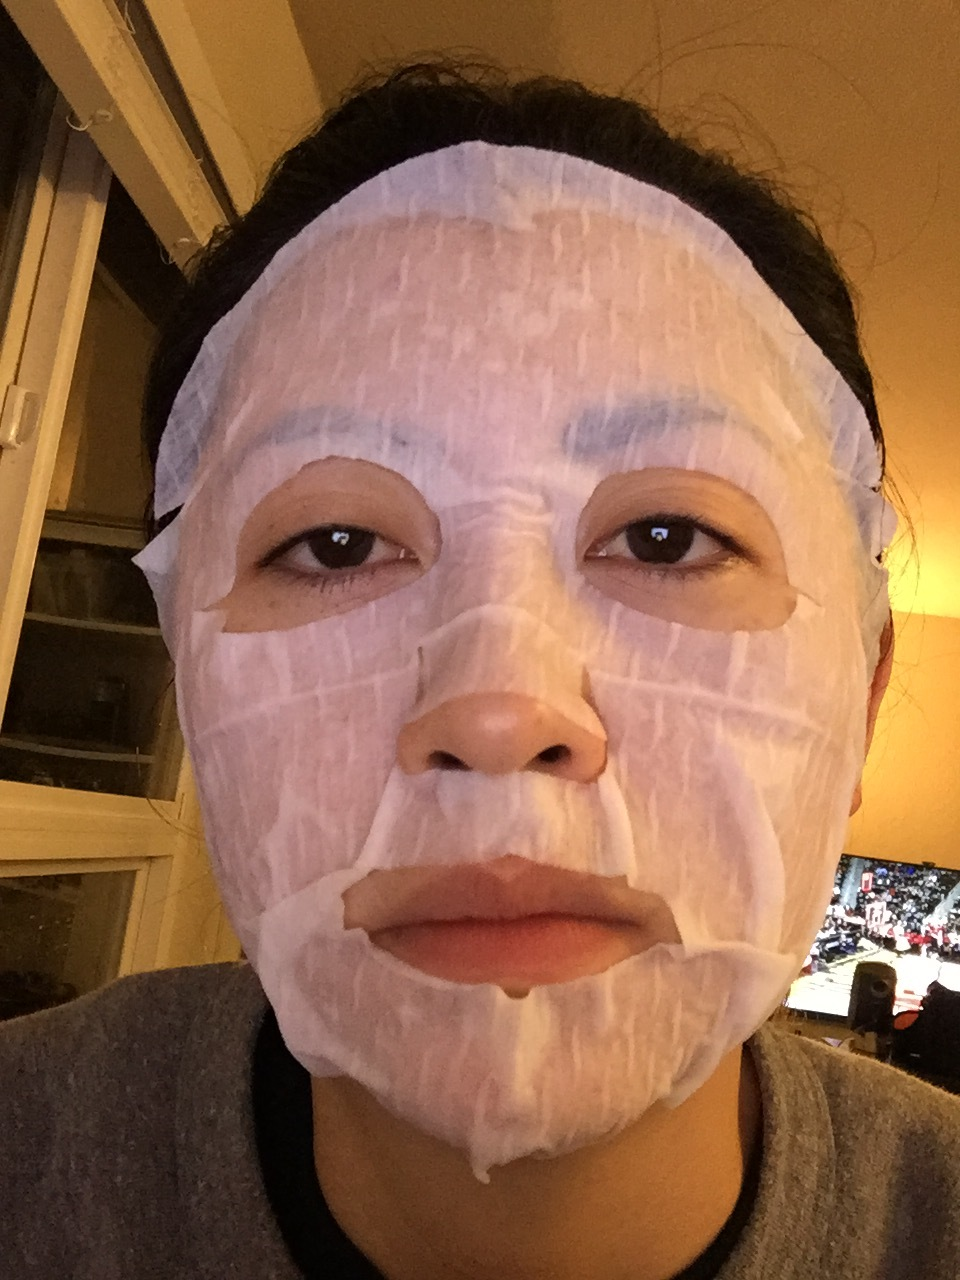 SEPHORA face mask. Not the best fitting mask, as you can tell. Either that, or my nose is unusually large.